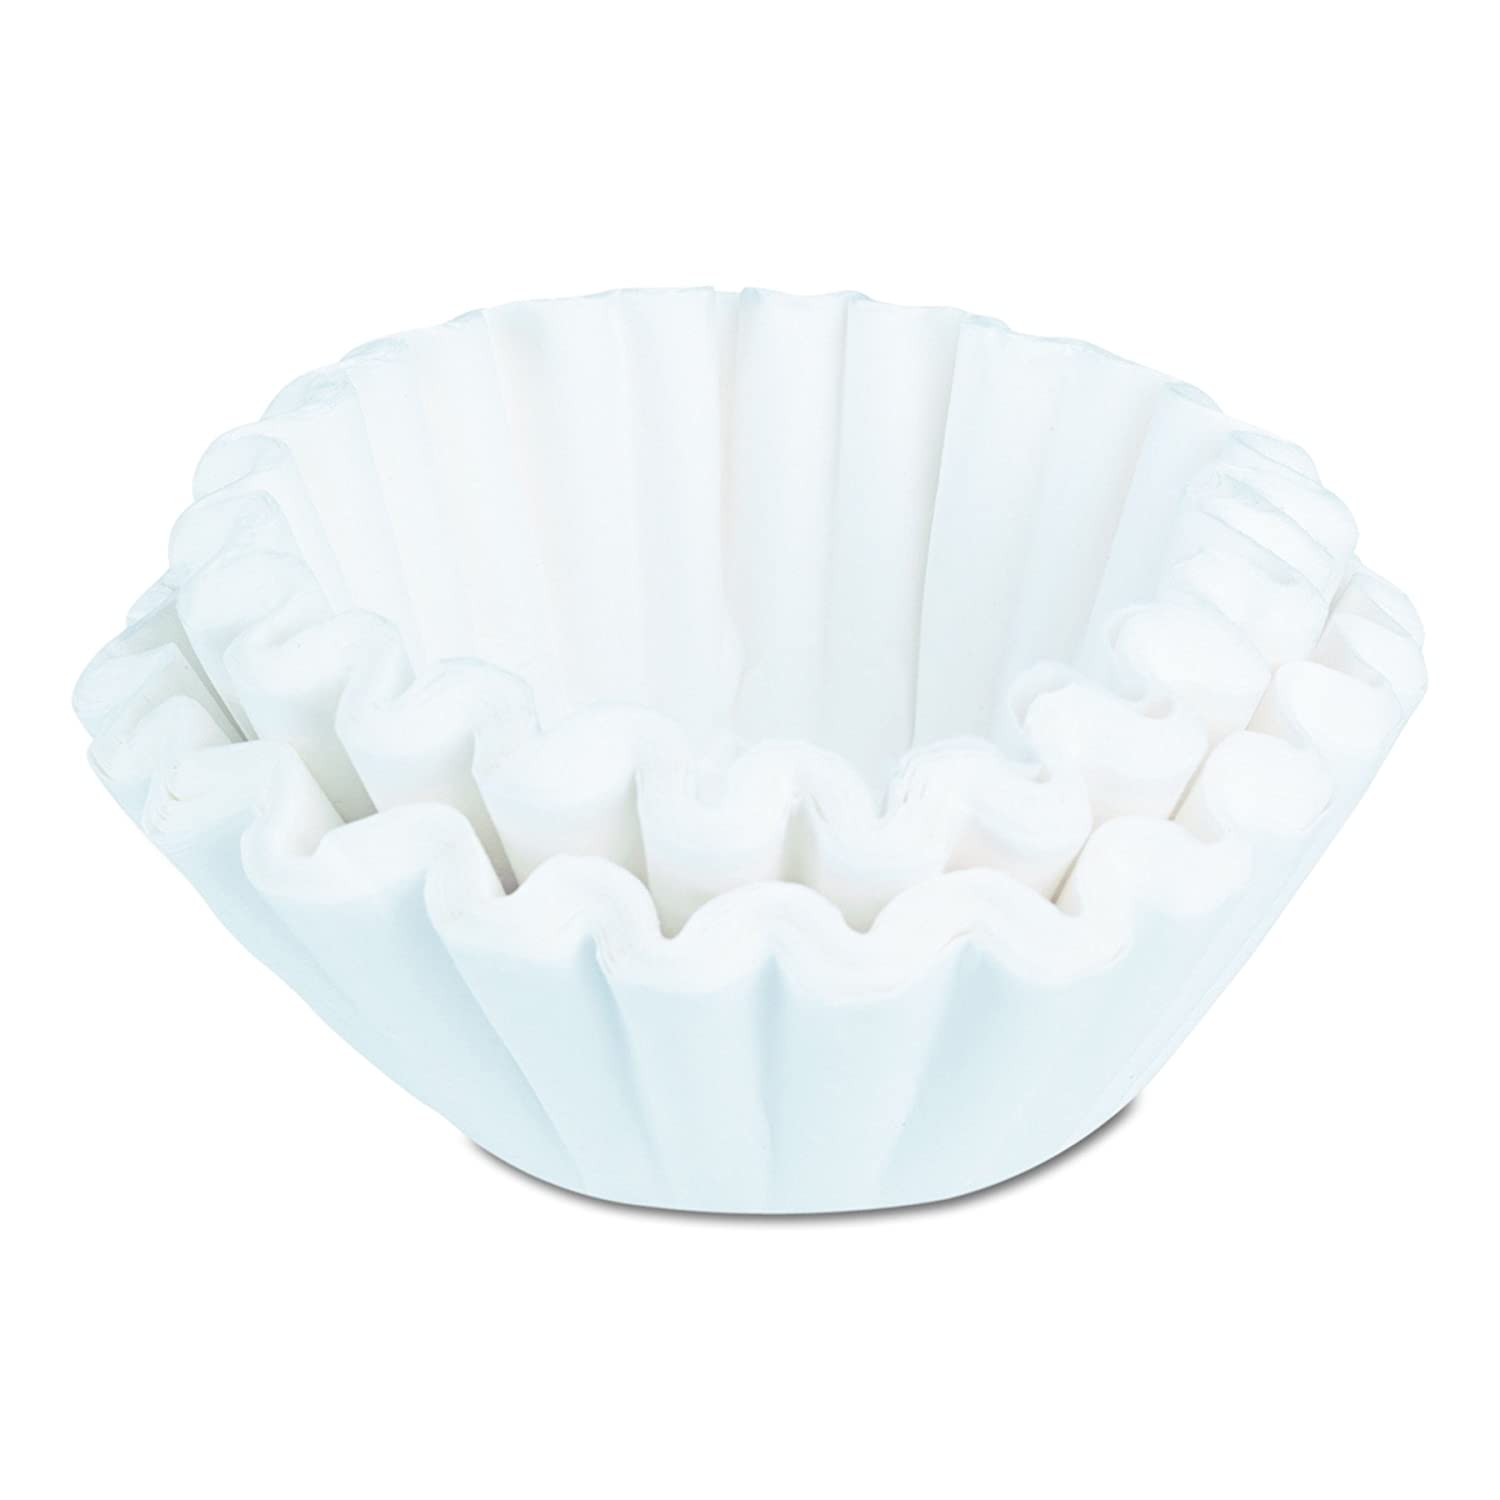 Bunn A10 Paper Coffee Filter for 8, 10 Cup Brewers and Home Models (Case of 1000) Bunn-O-Matic Corporation